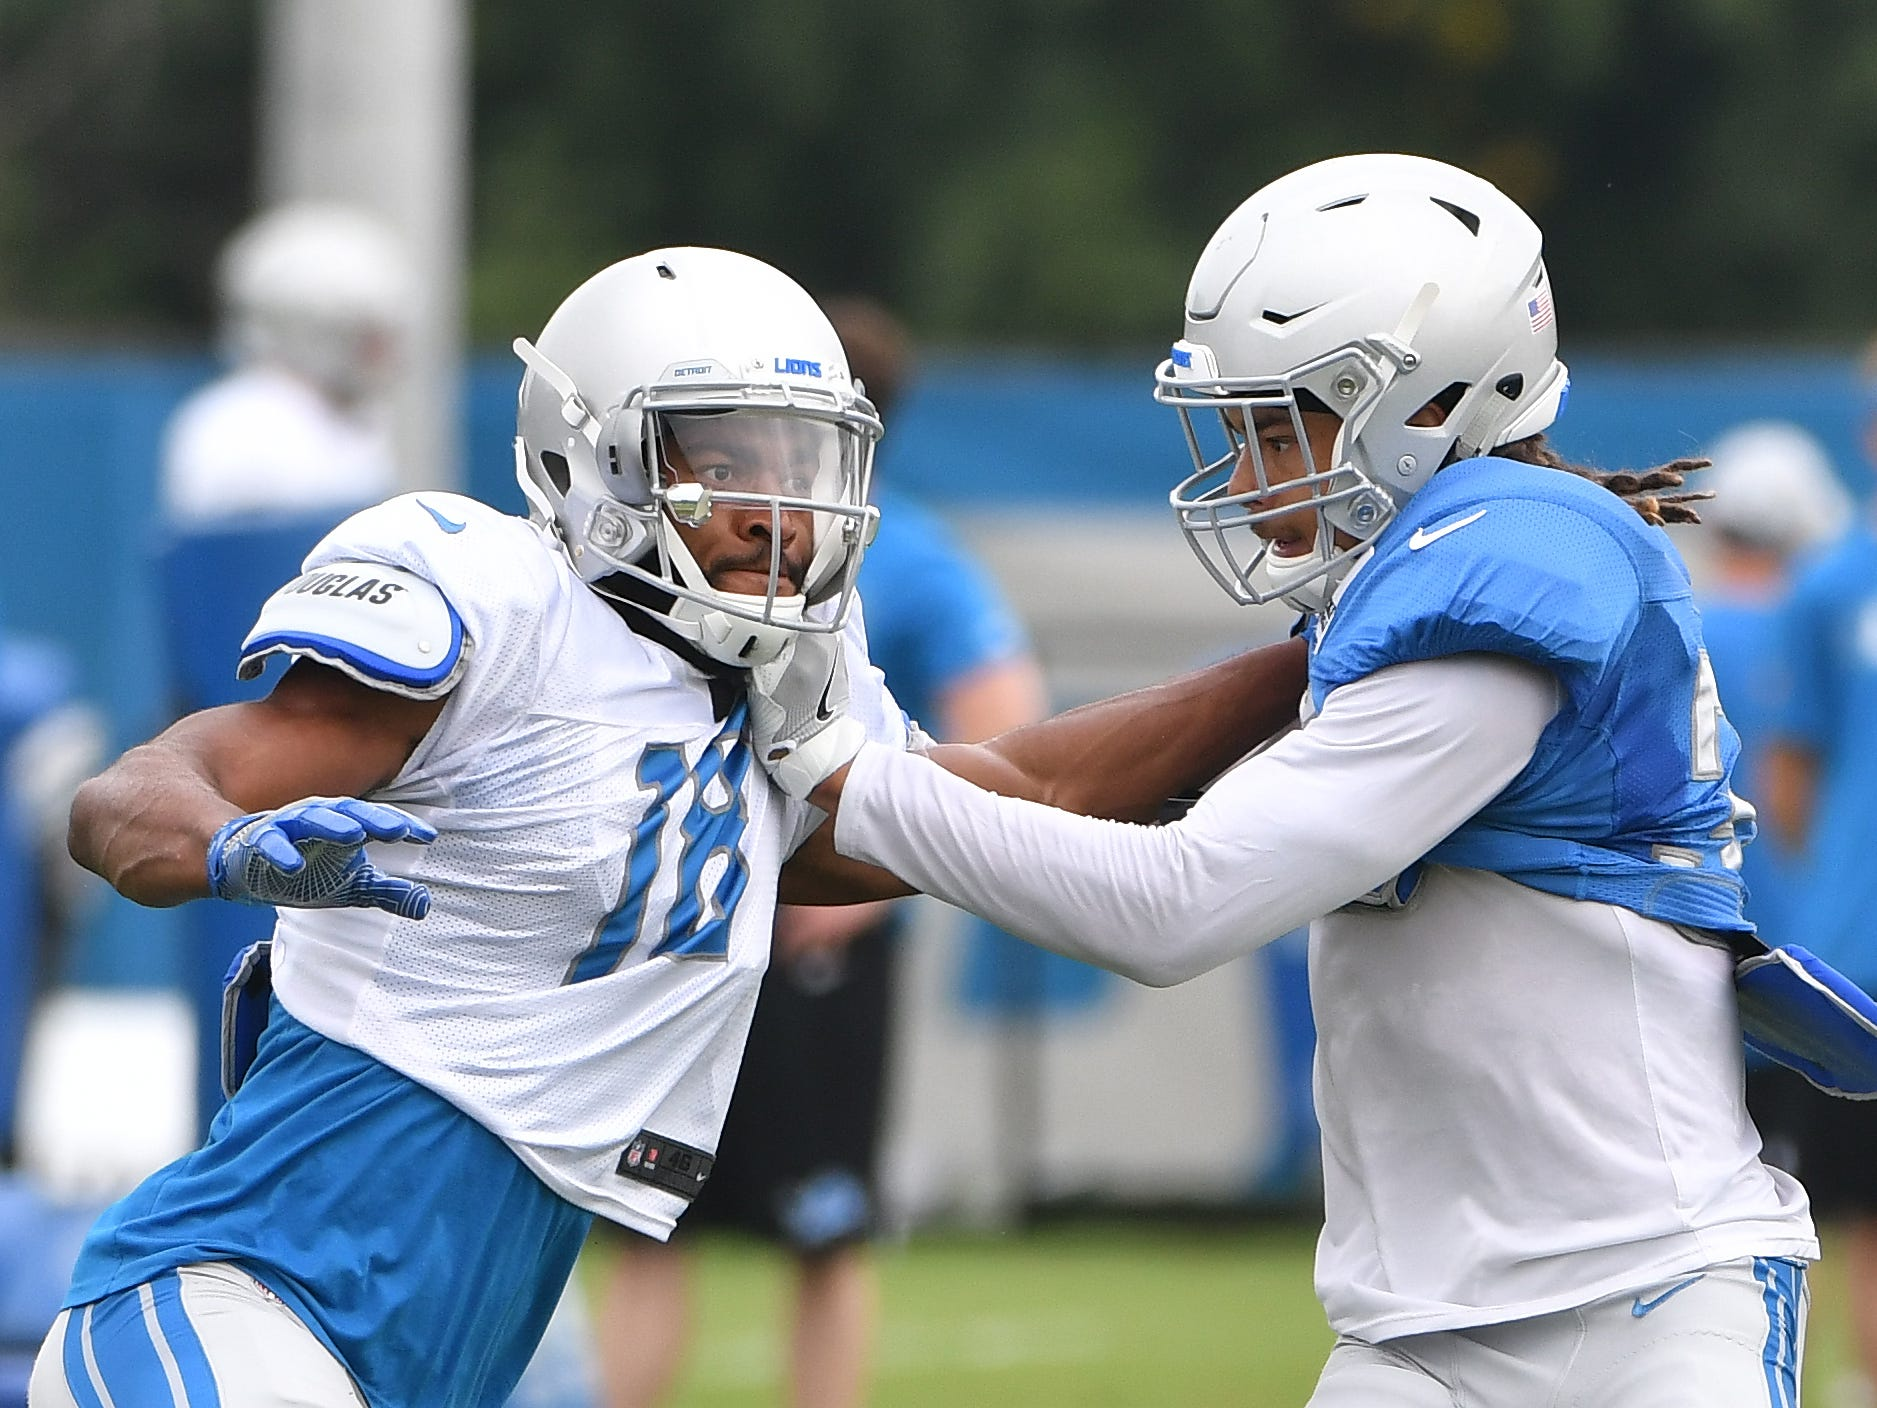 Lions wide receiver Chris Lacy and cornerback Mike Ford work during a drill involving bursting off the line of scrimmage against a defender.